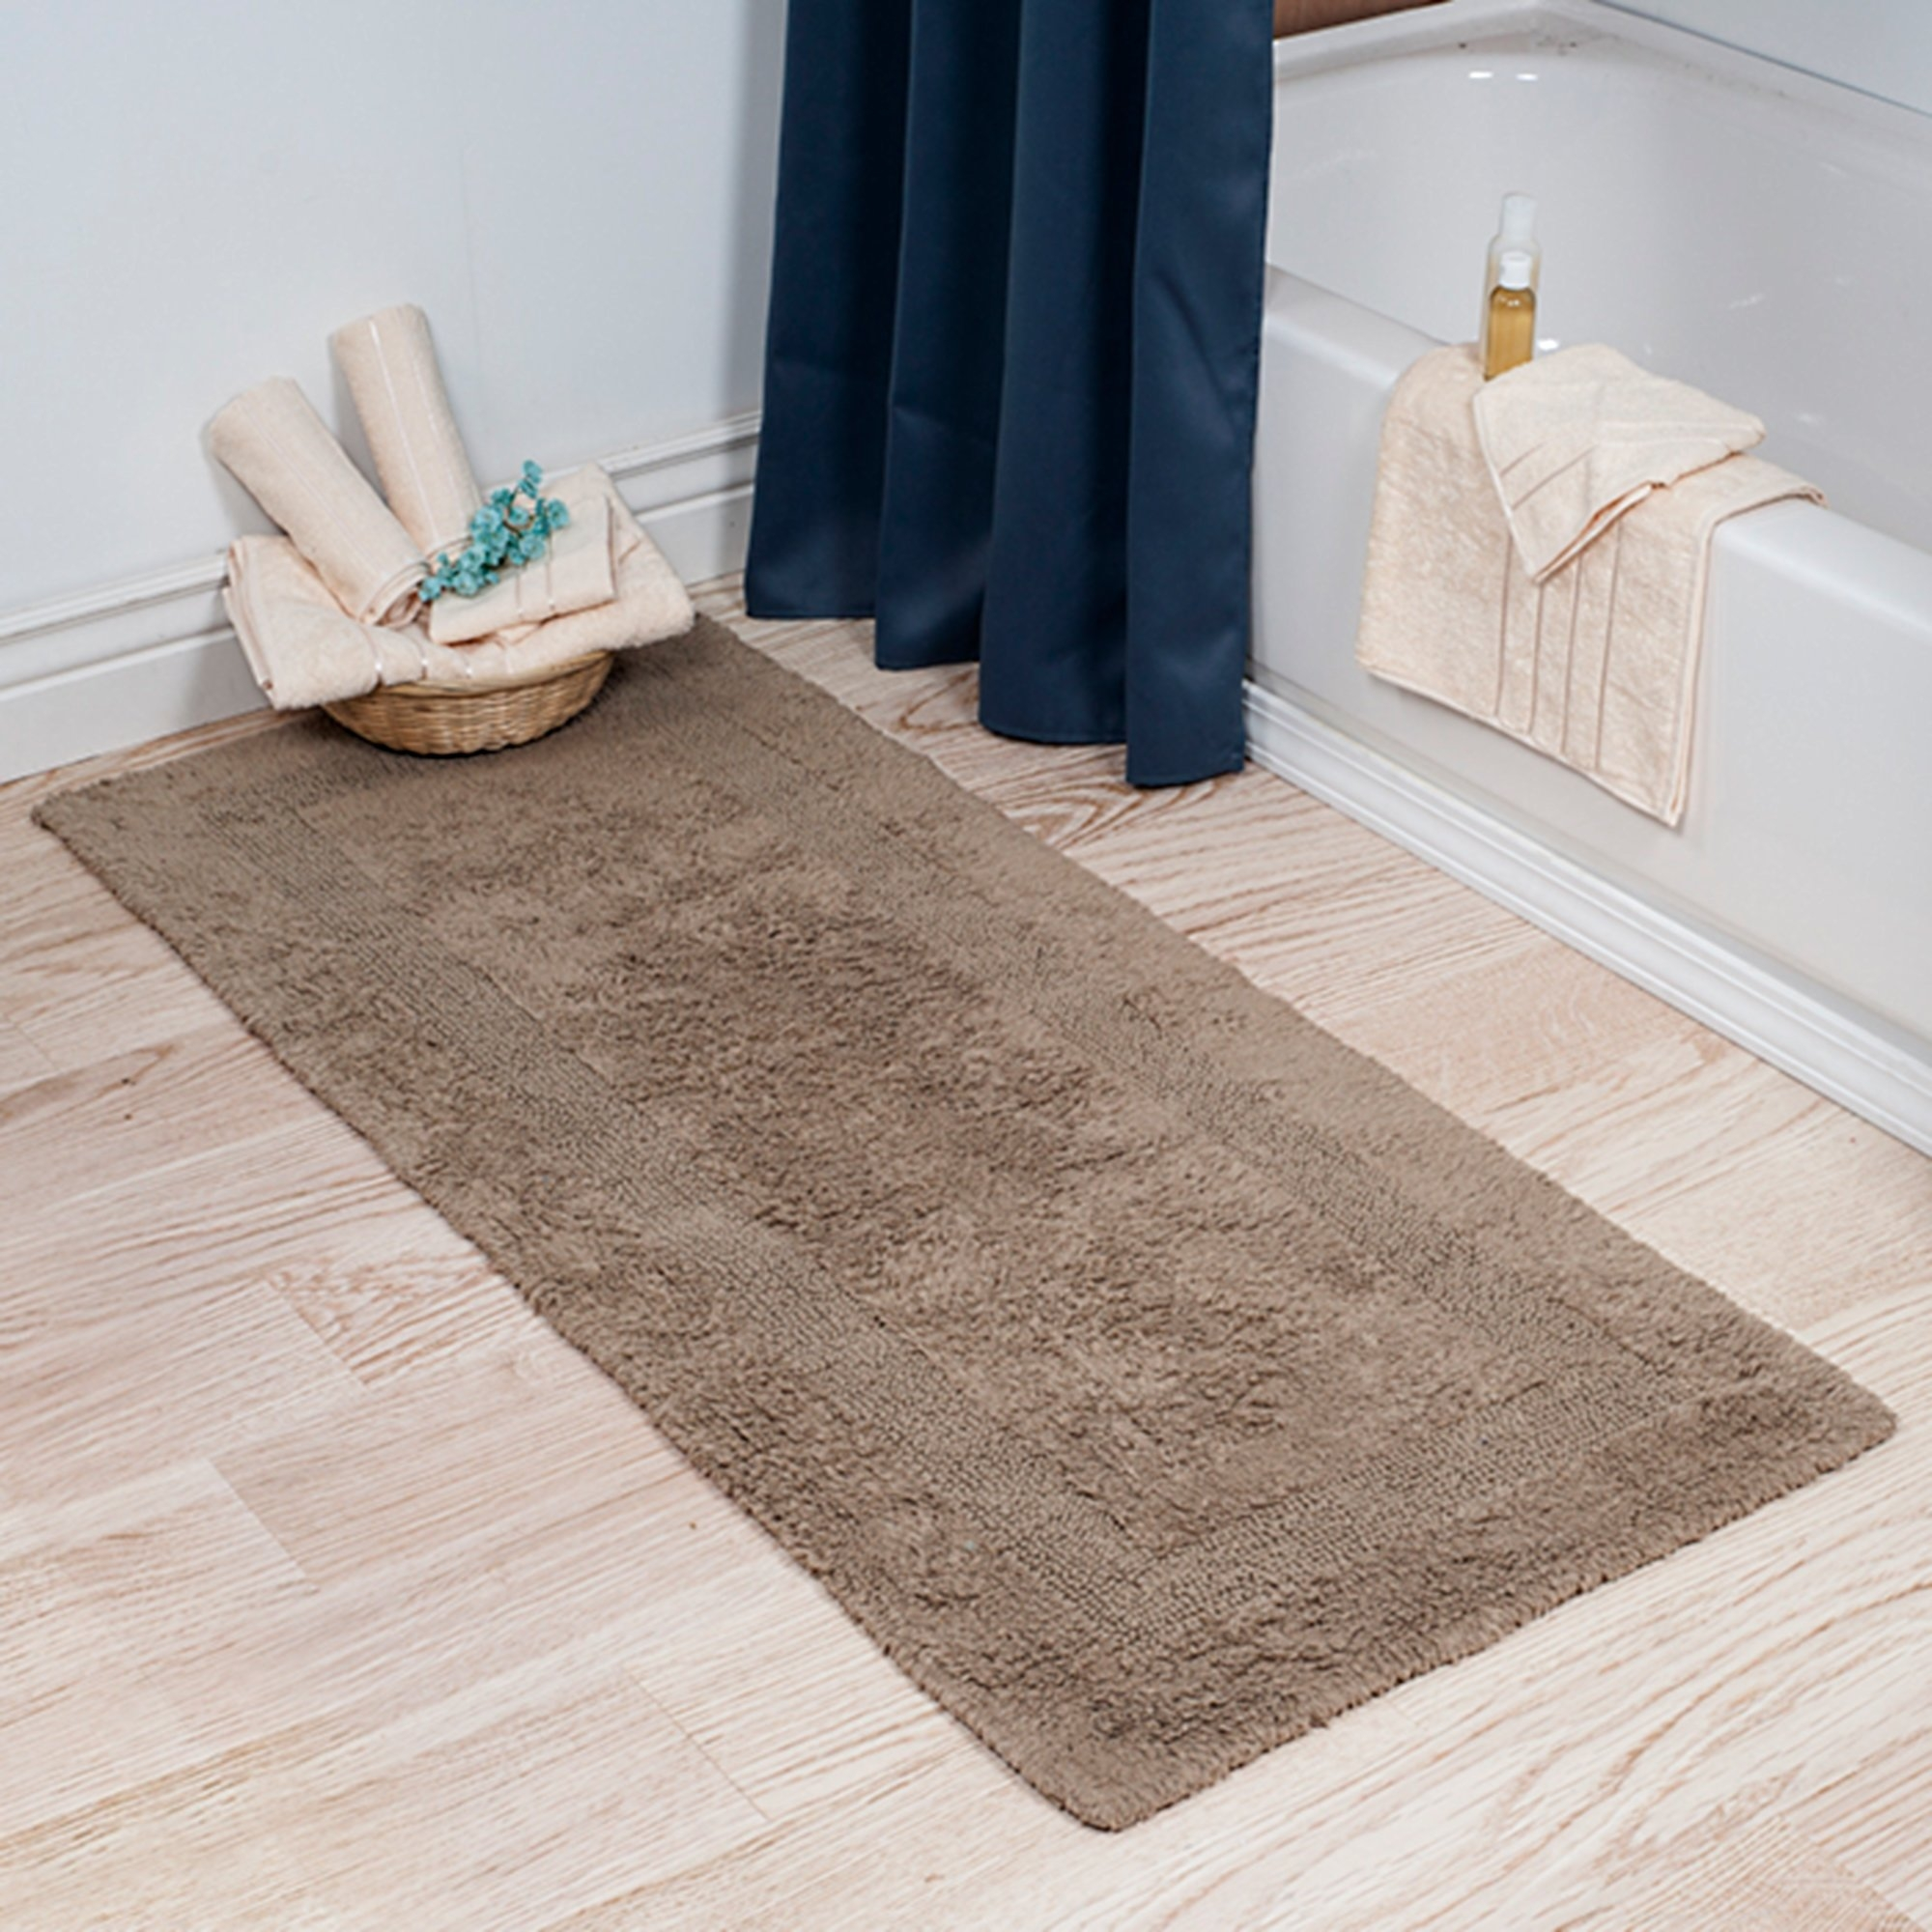 Long Thin Bath Mat